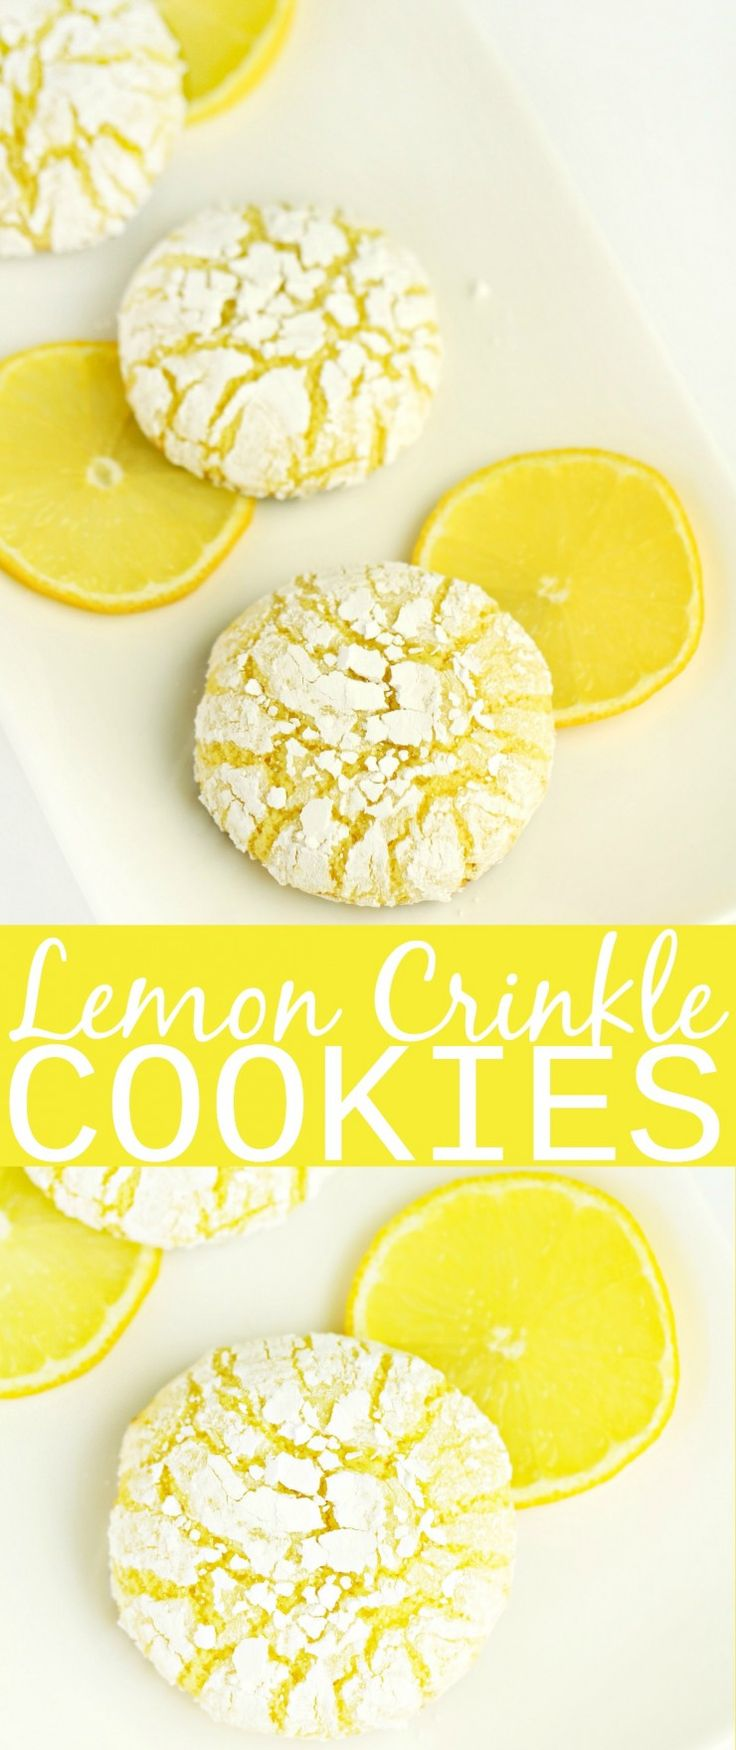 Lemon-Crinkle-Cookies 7